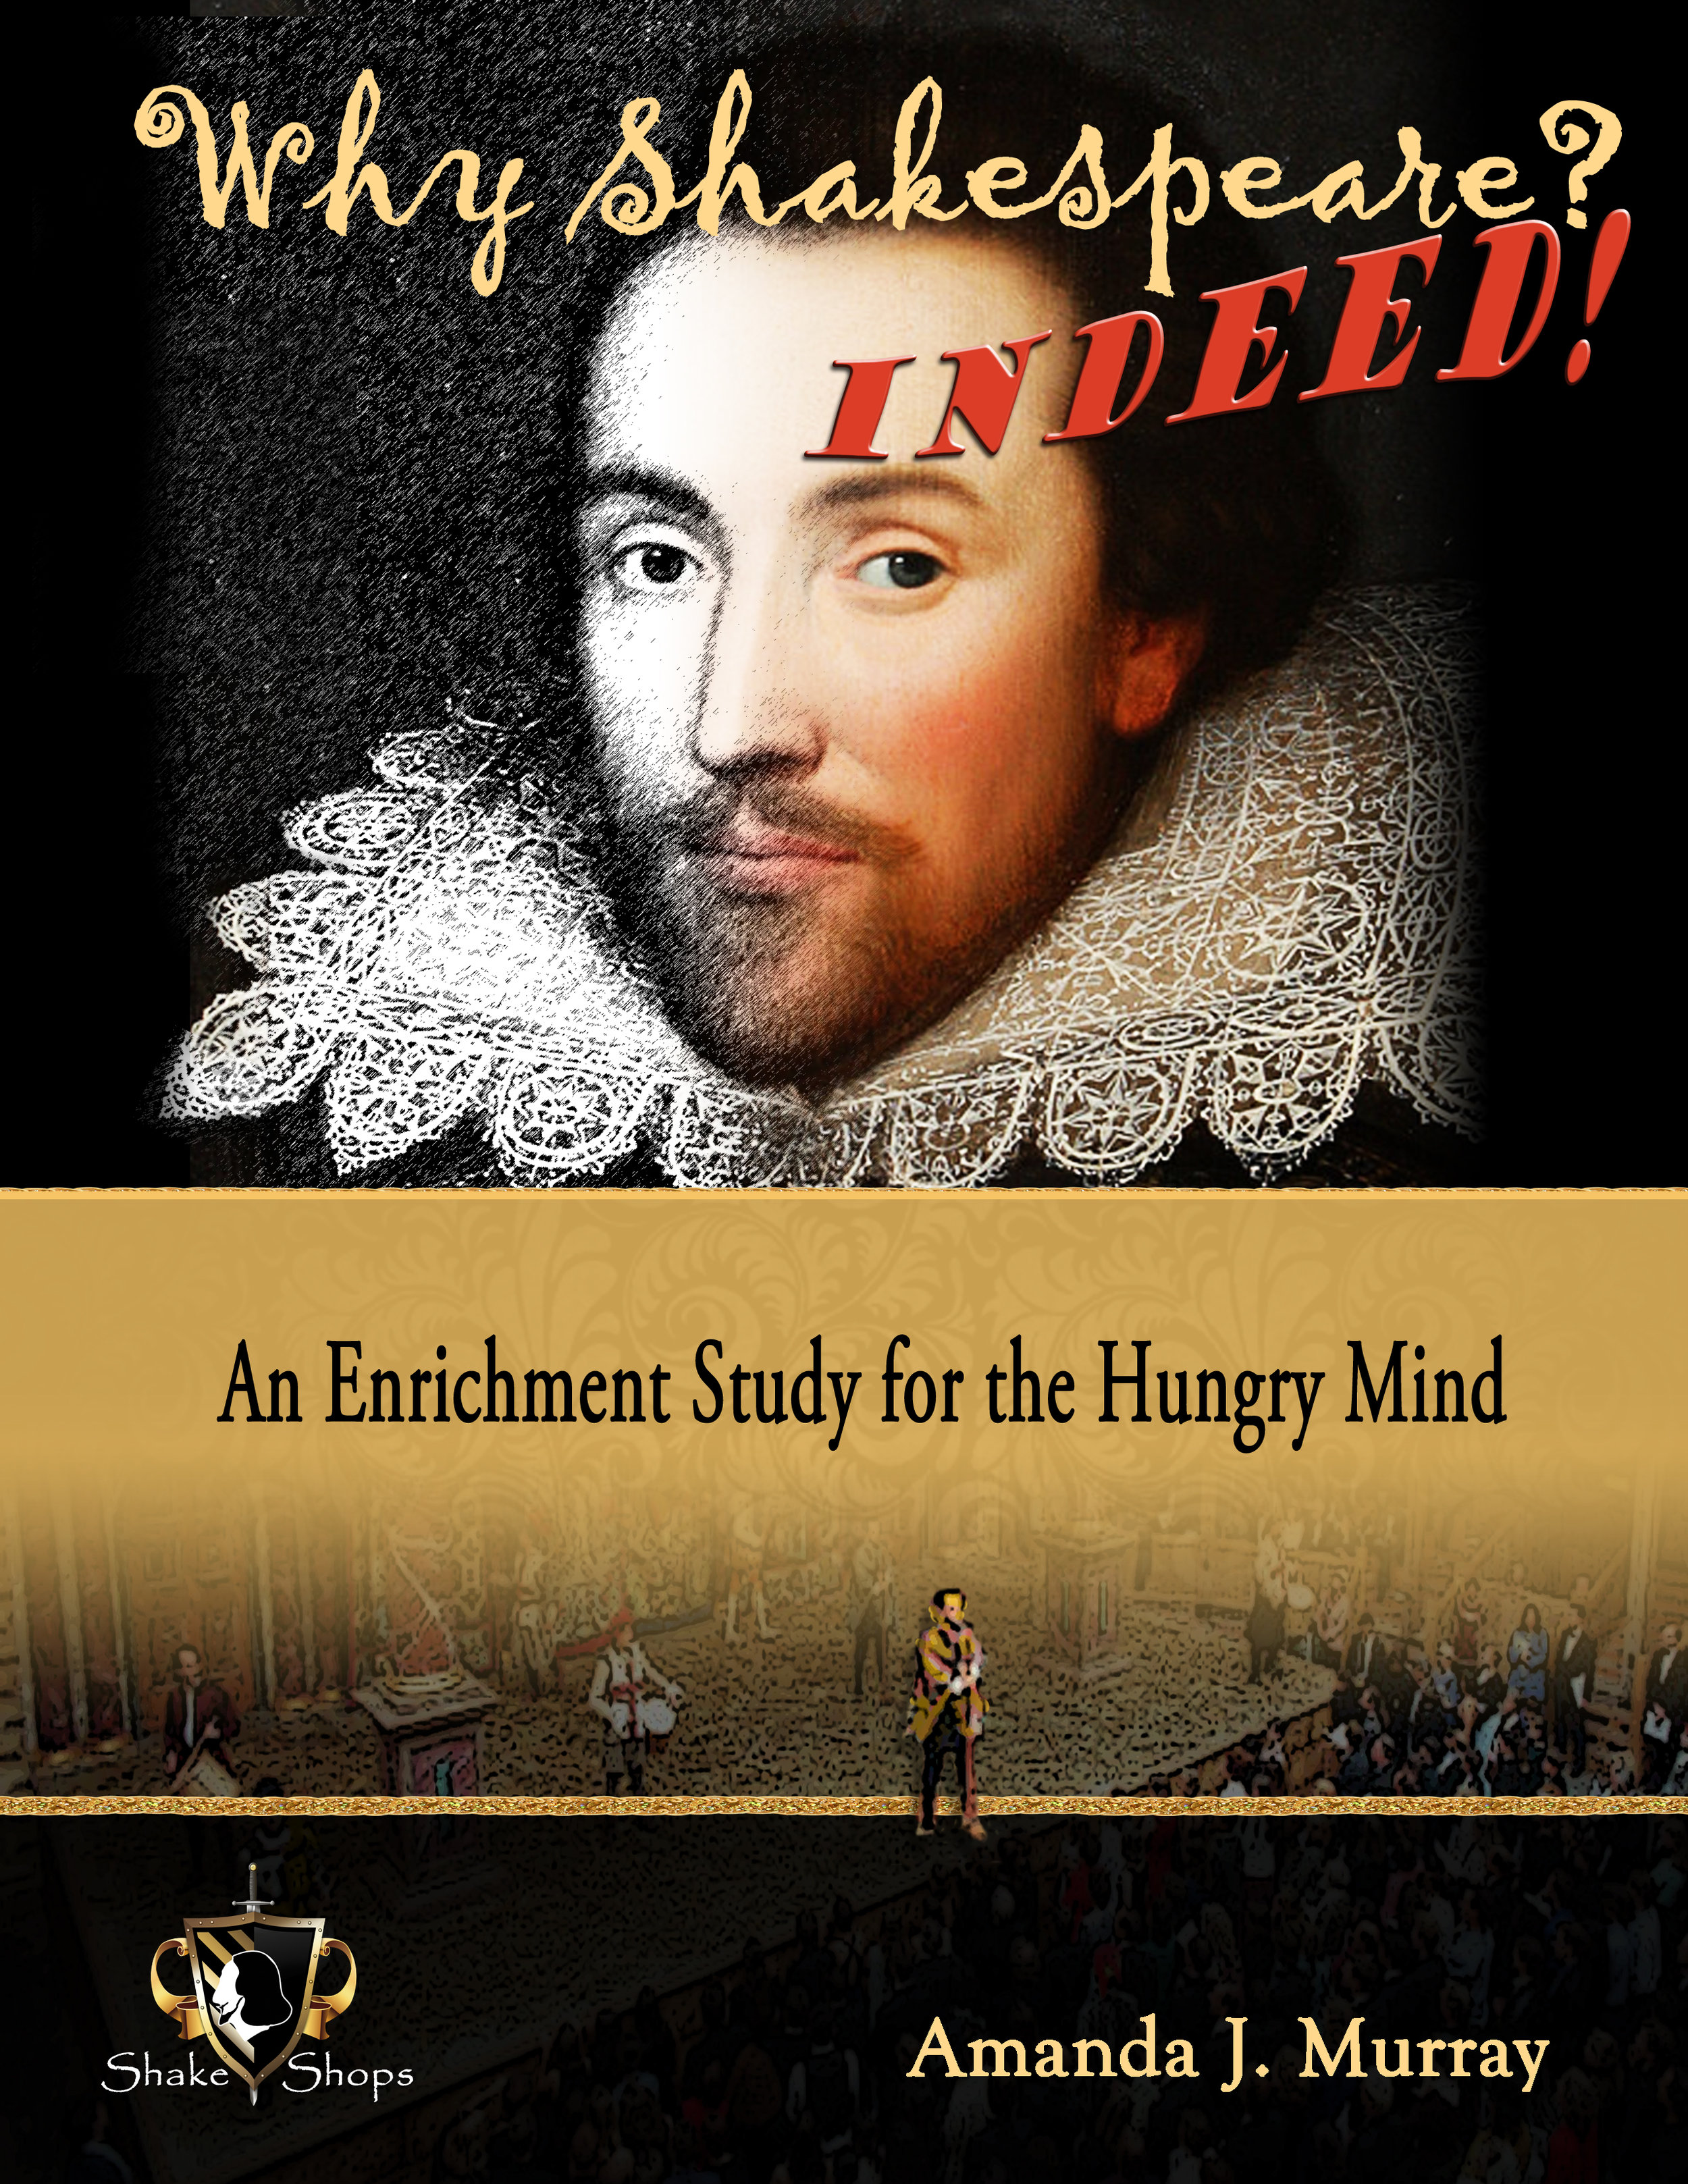 Shakespeare book FRONT cover v8.jpg